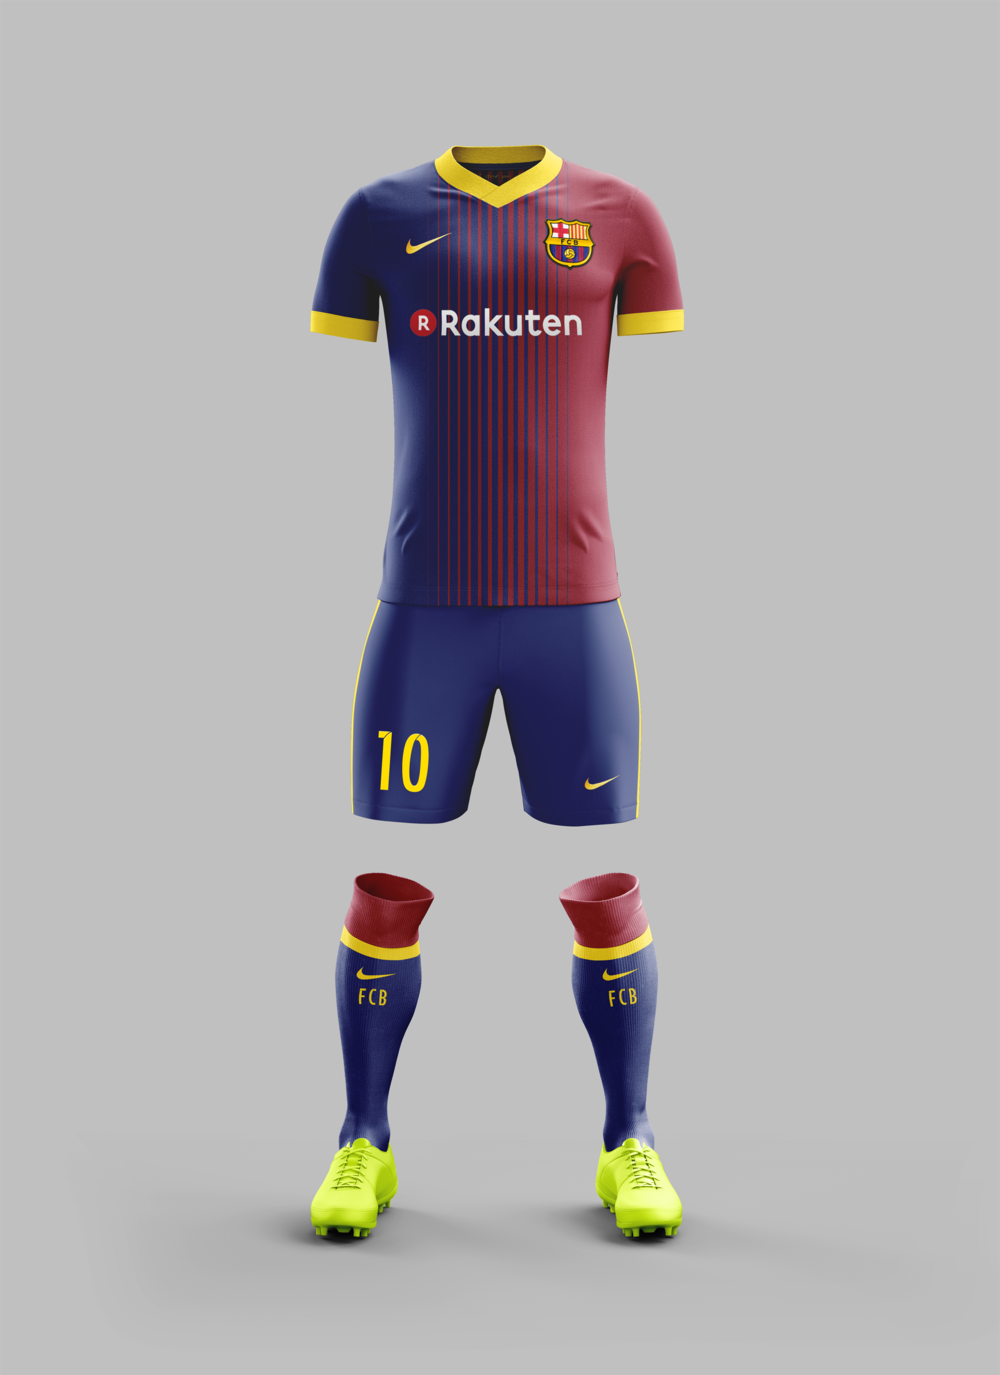 ca94a0cb3a8 This season's FC Barcelona home shirt is reminiscent of both football  jerseys that the team wore ten years ago in 2009 and twenty years ago in  1999.